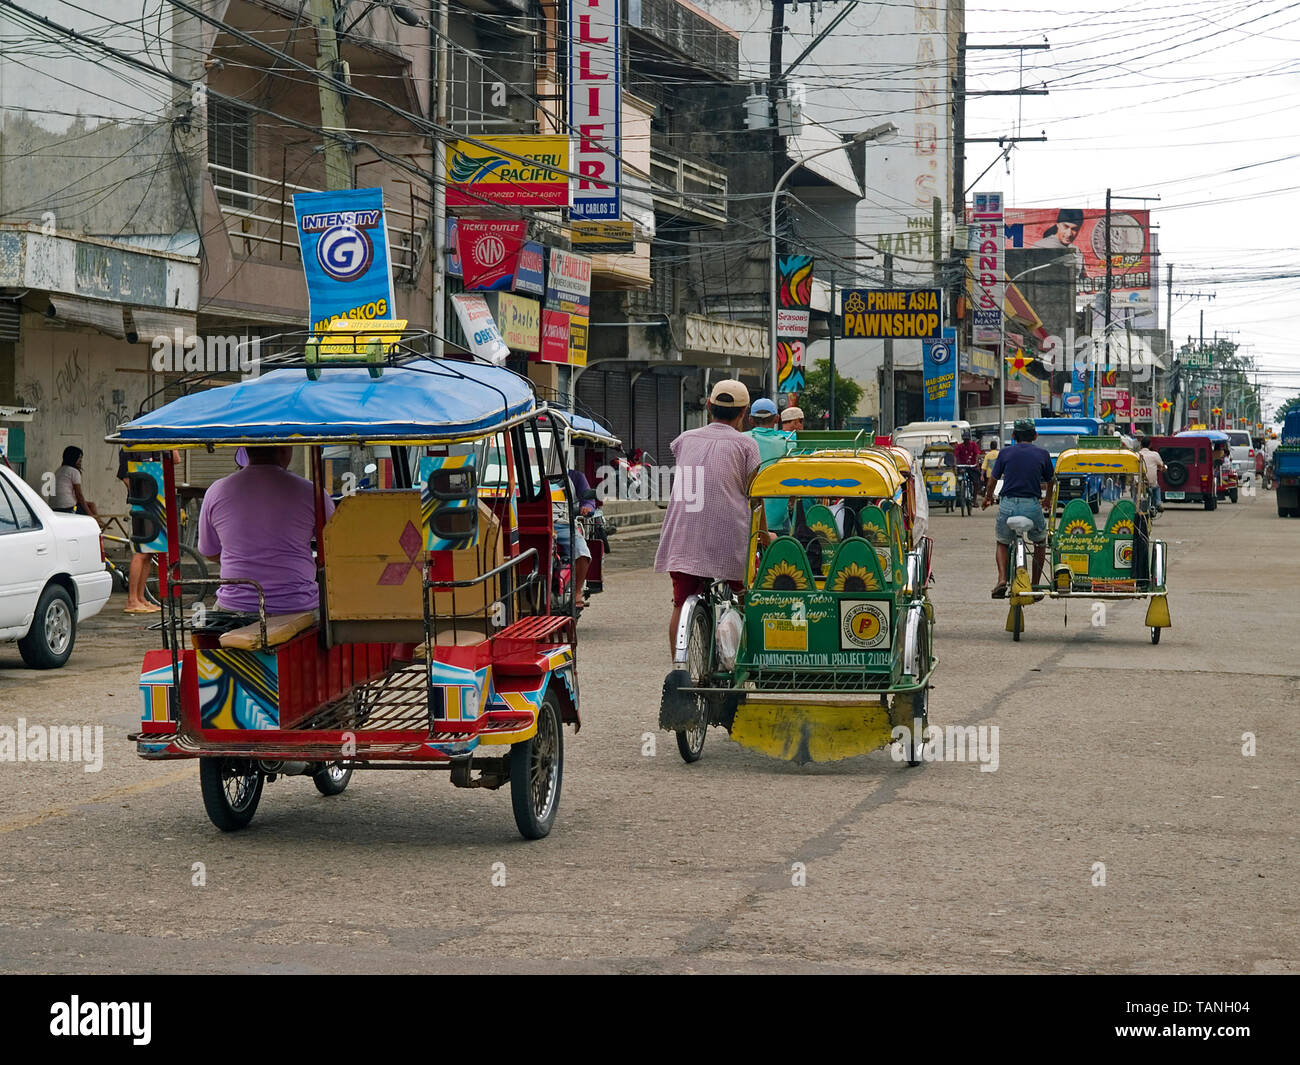 Filipinos with traditional Tricycles, common public transportation, Moalboal, Cebu, Central Visayas, Philippines - Stock Image